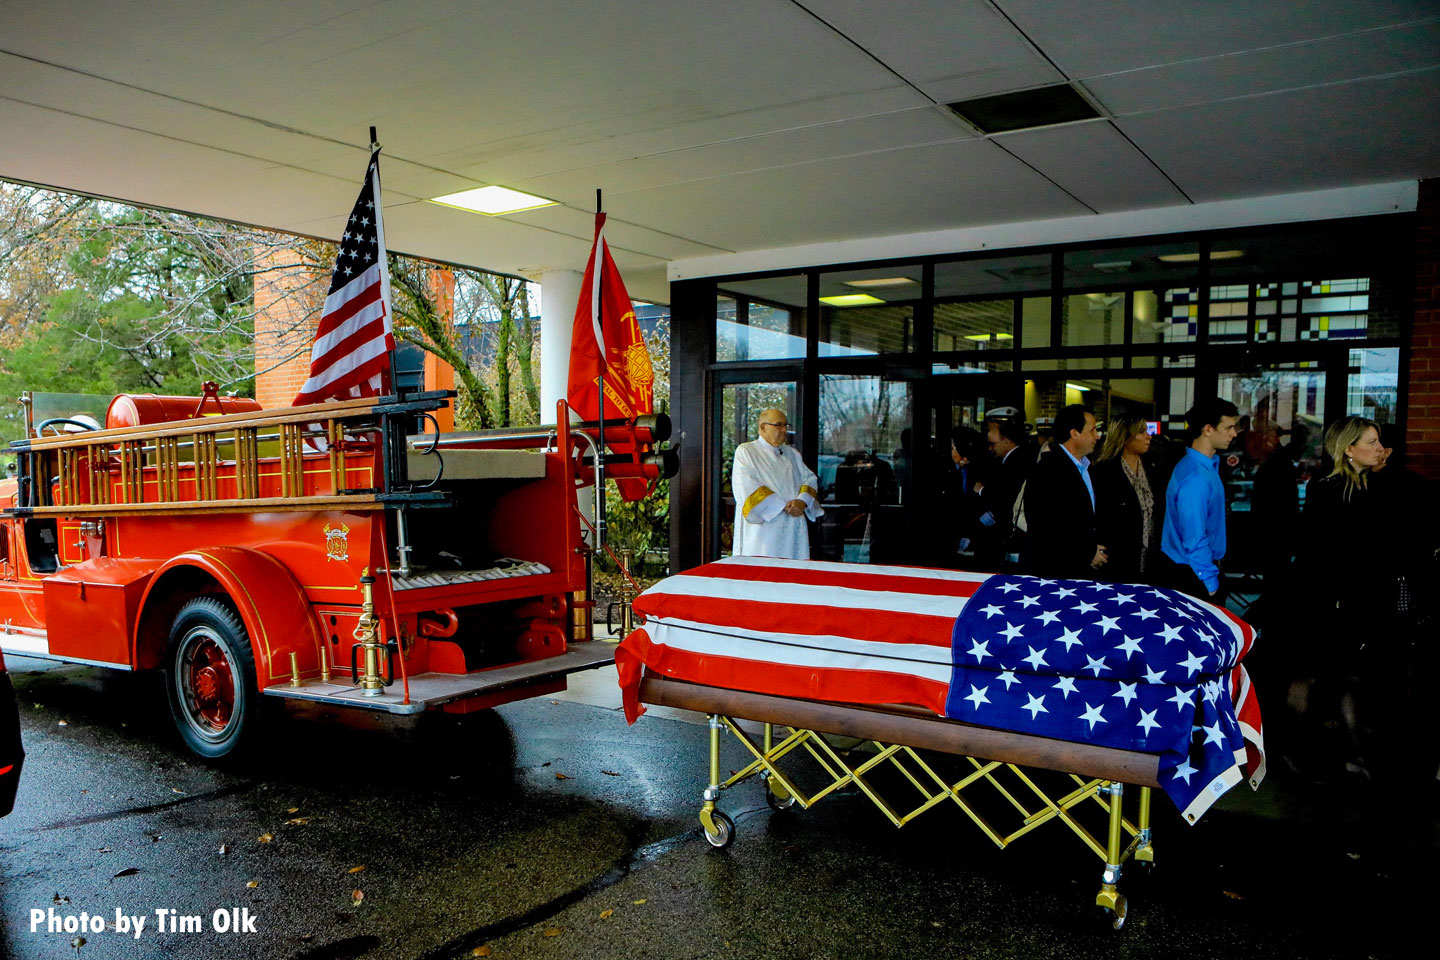 The casket containing the chief's remains to be loaded onto the rig.